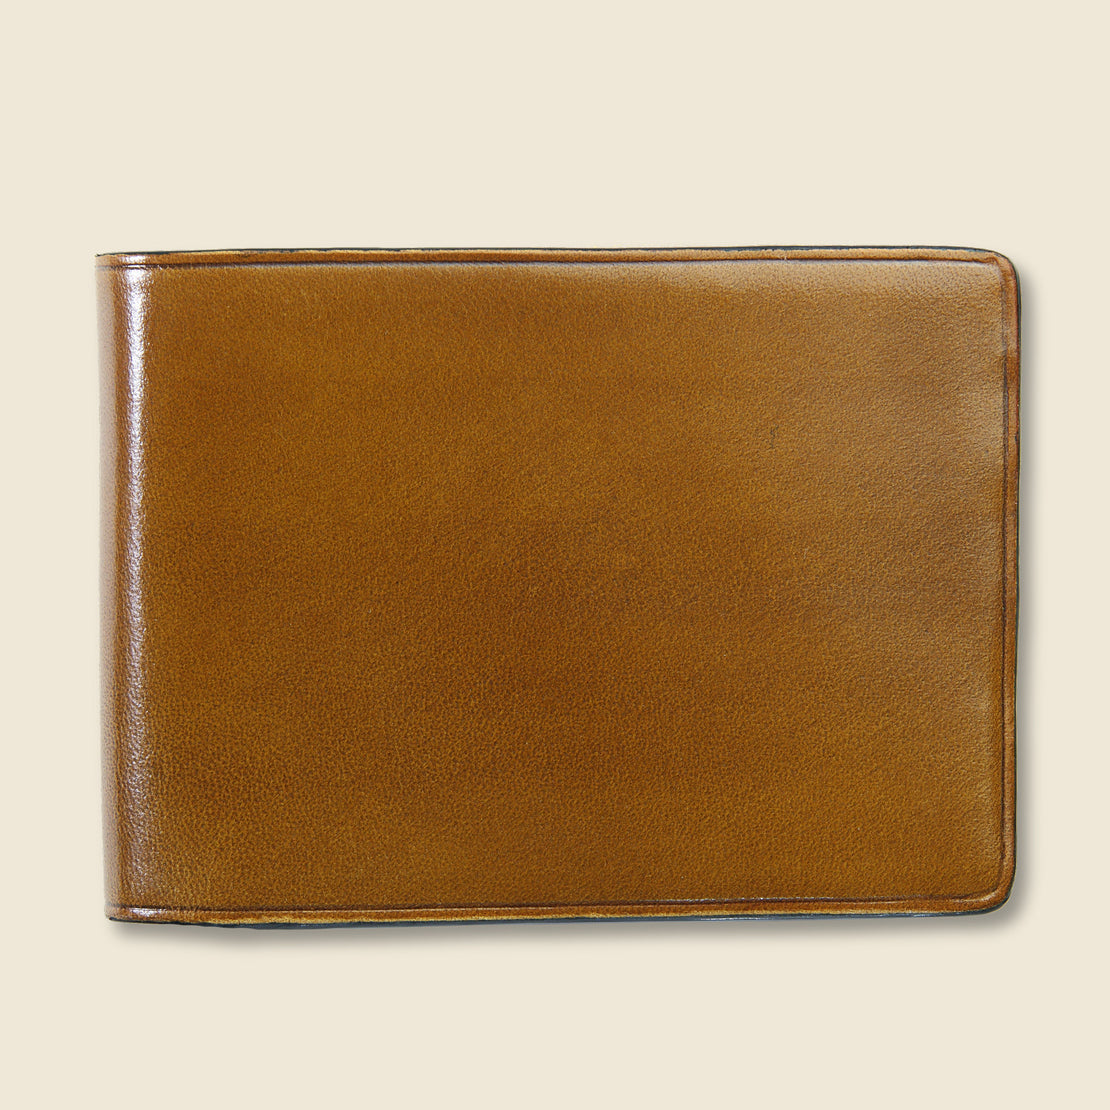 Il Bussetto Small Bi-Fold Wallet - Light Brown